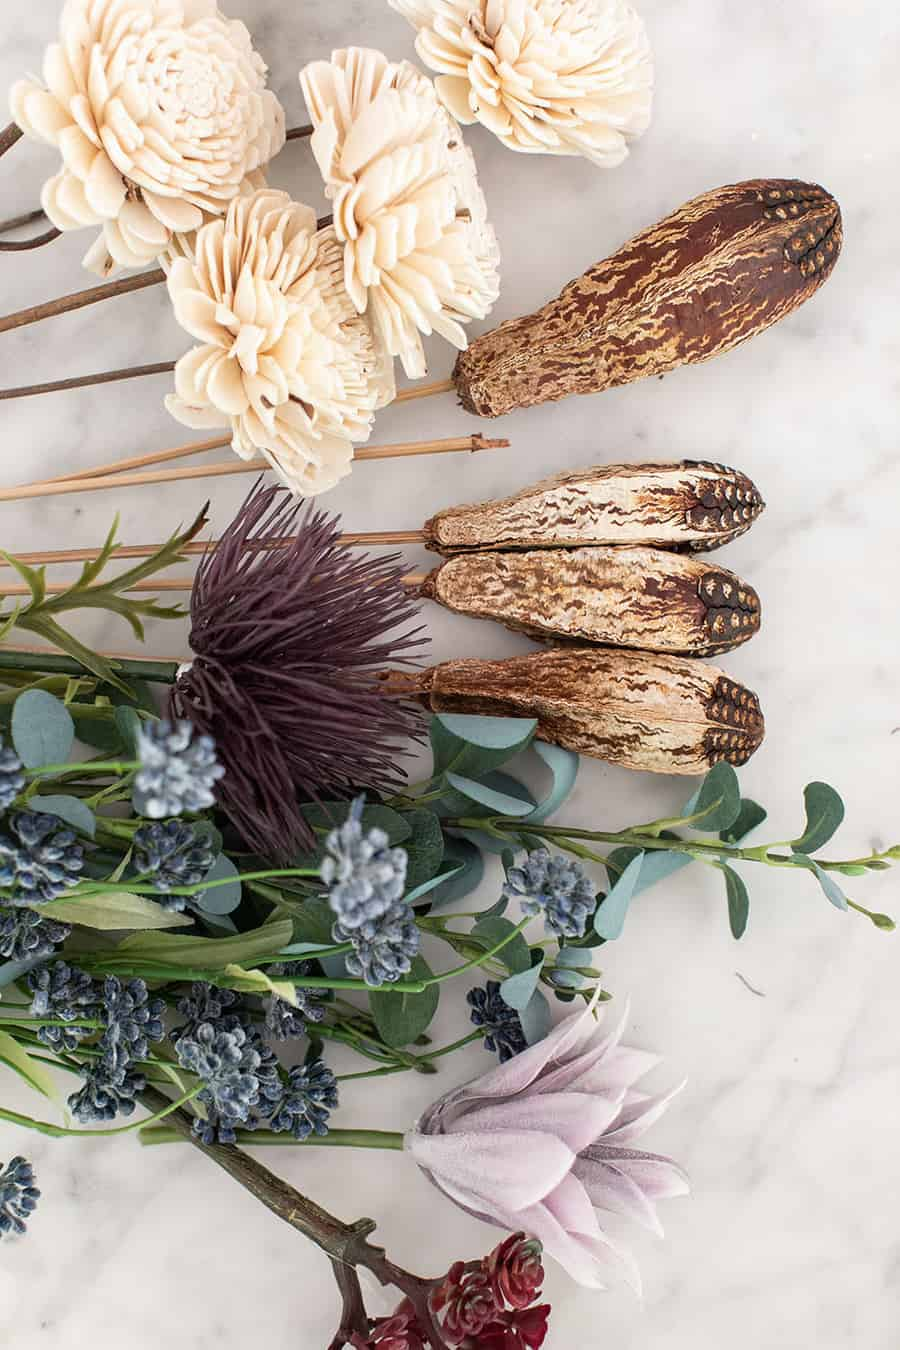 Dried and faux flowers on a marble table